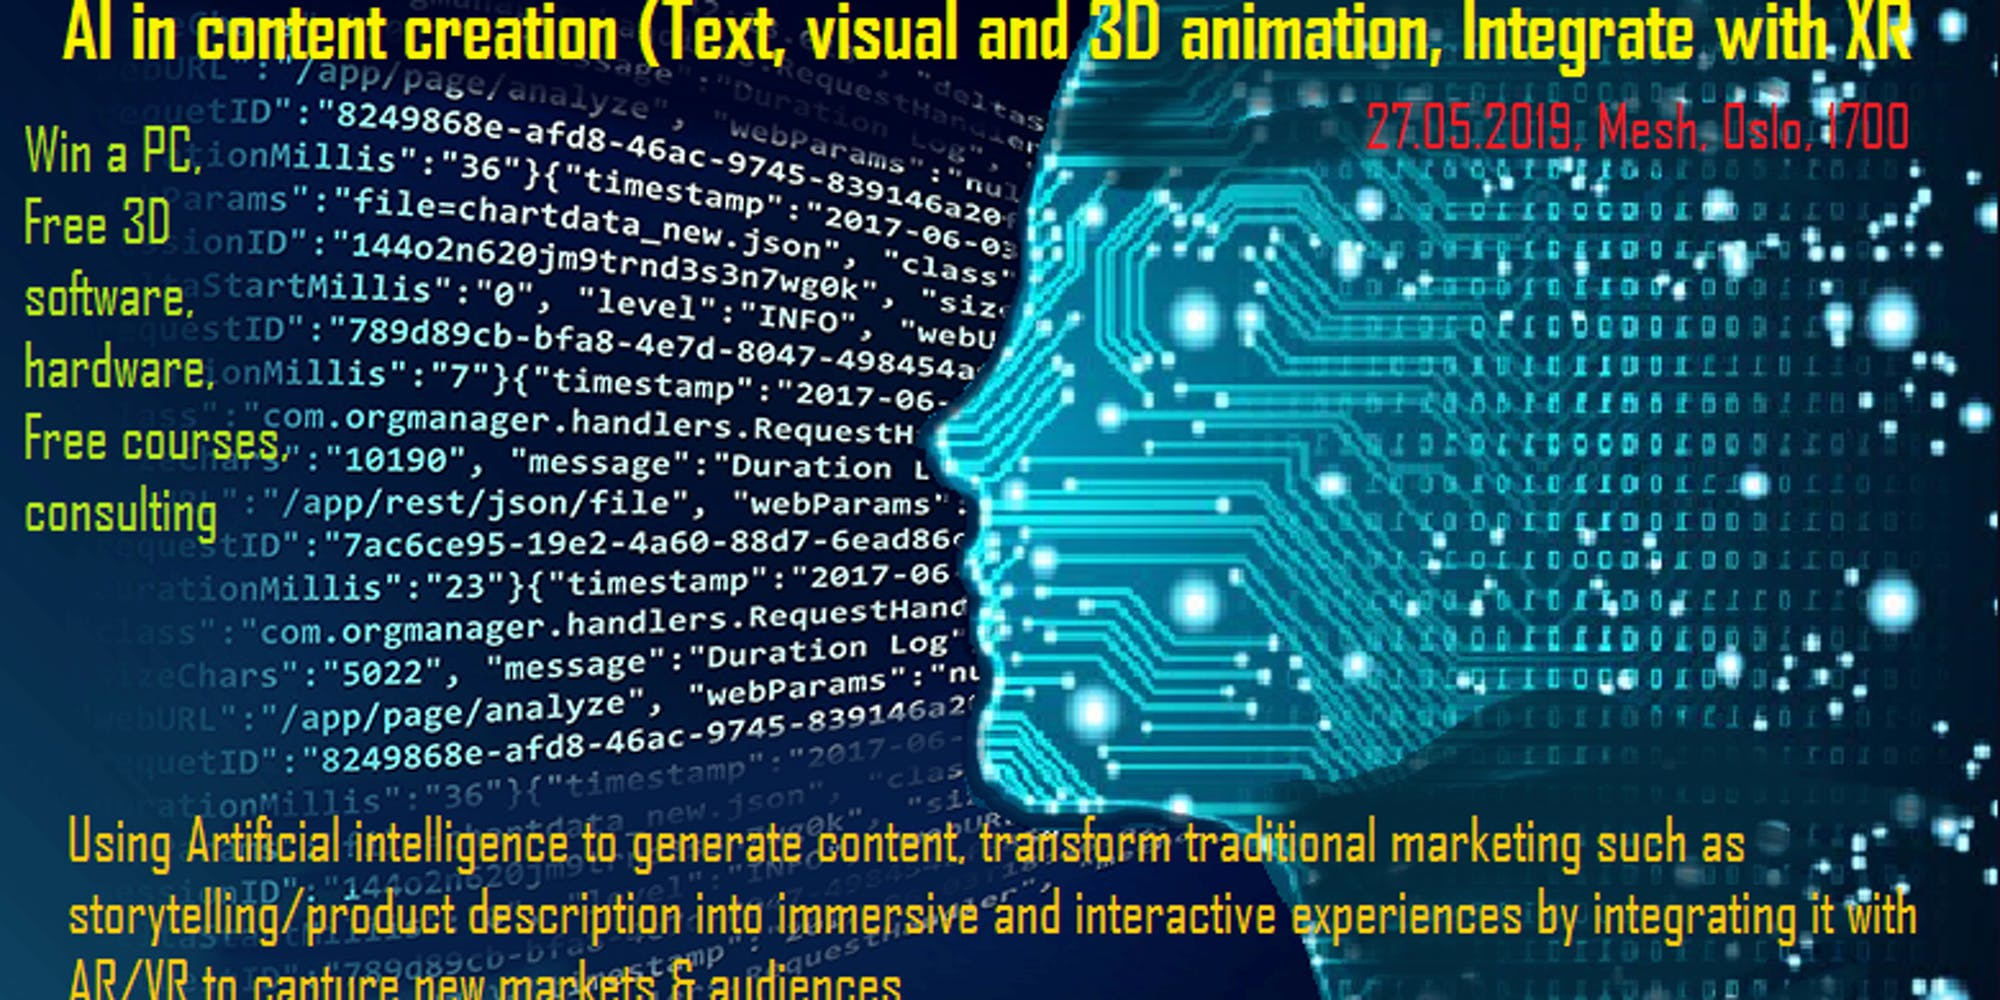 AI in content marketing (Text, visual and 3D animation) & Integrate